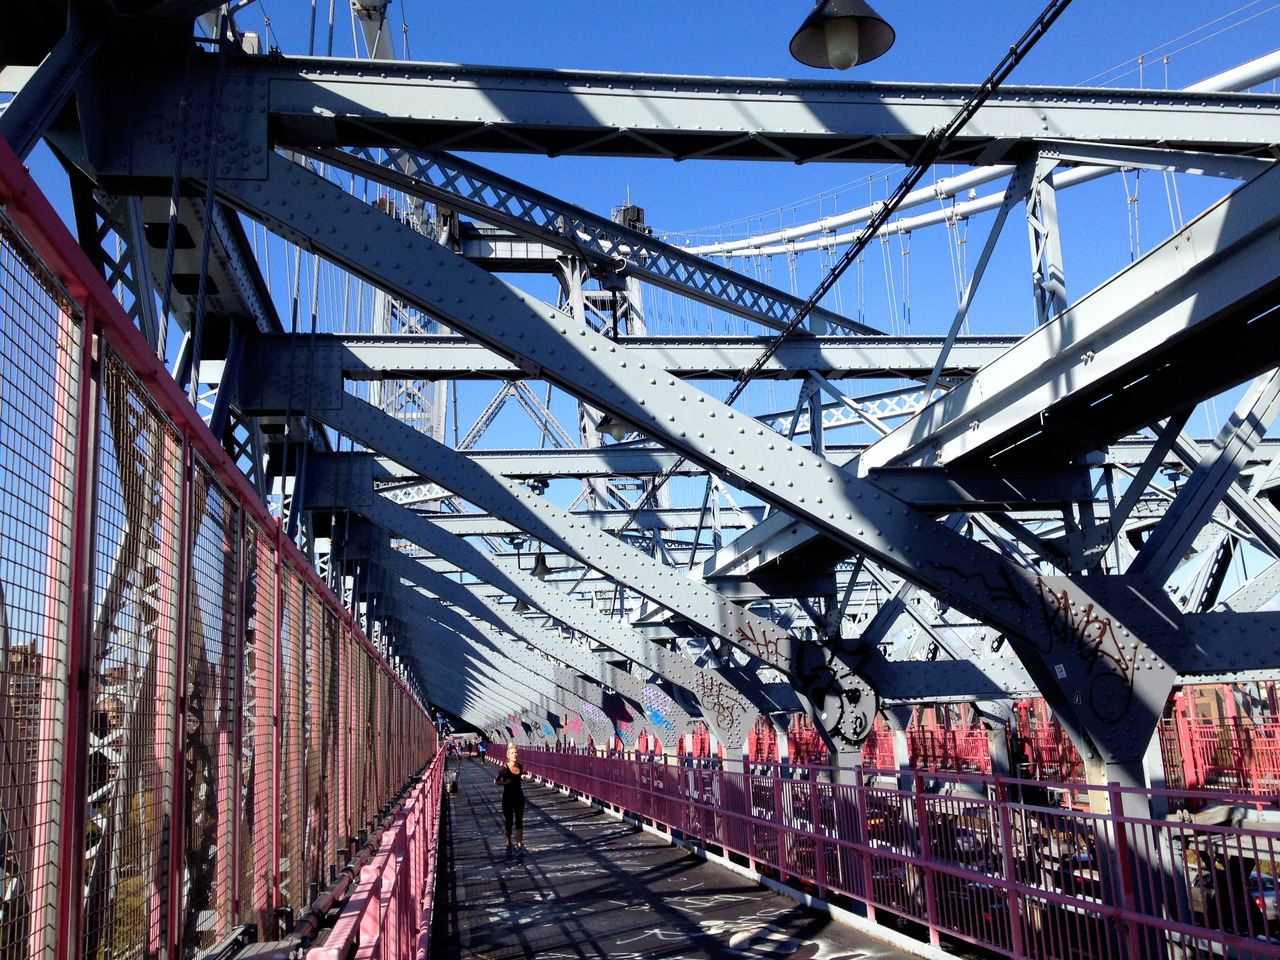 5 bridge run: manhattan to brooklynwilliamsburg bridge, nyc 11:50 am, 53° 15 miles